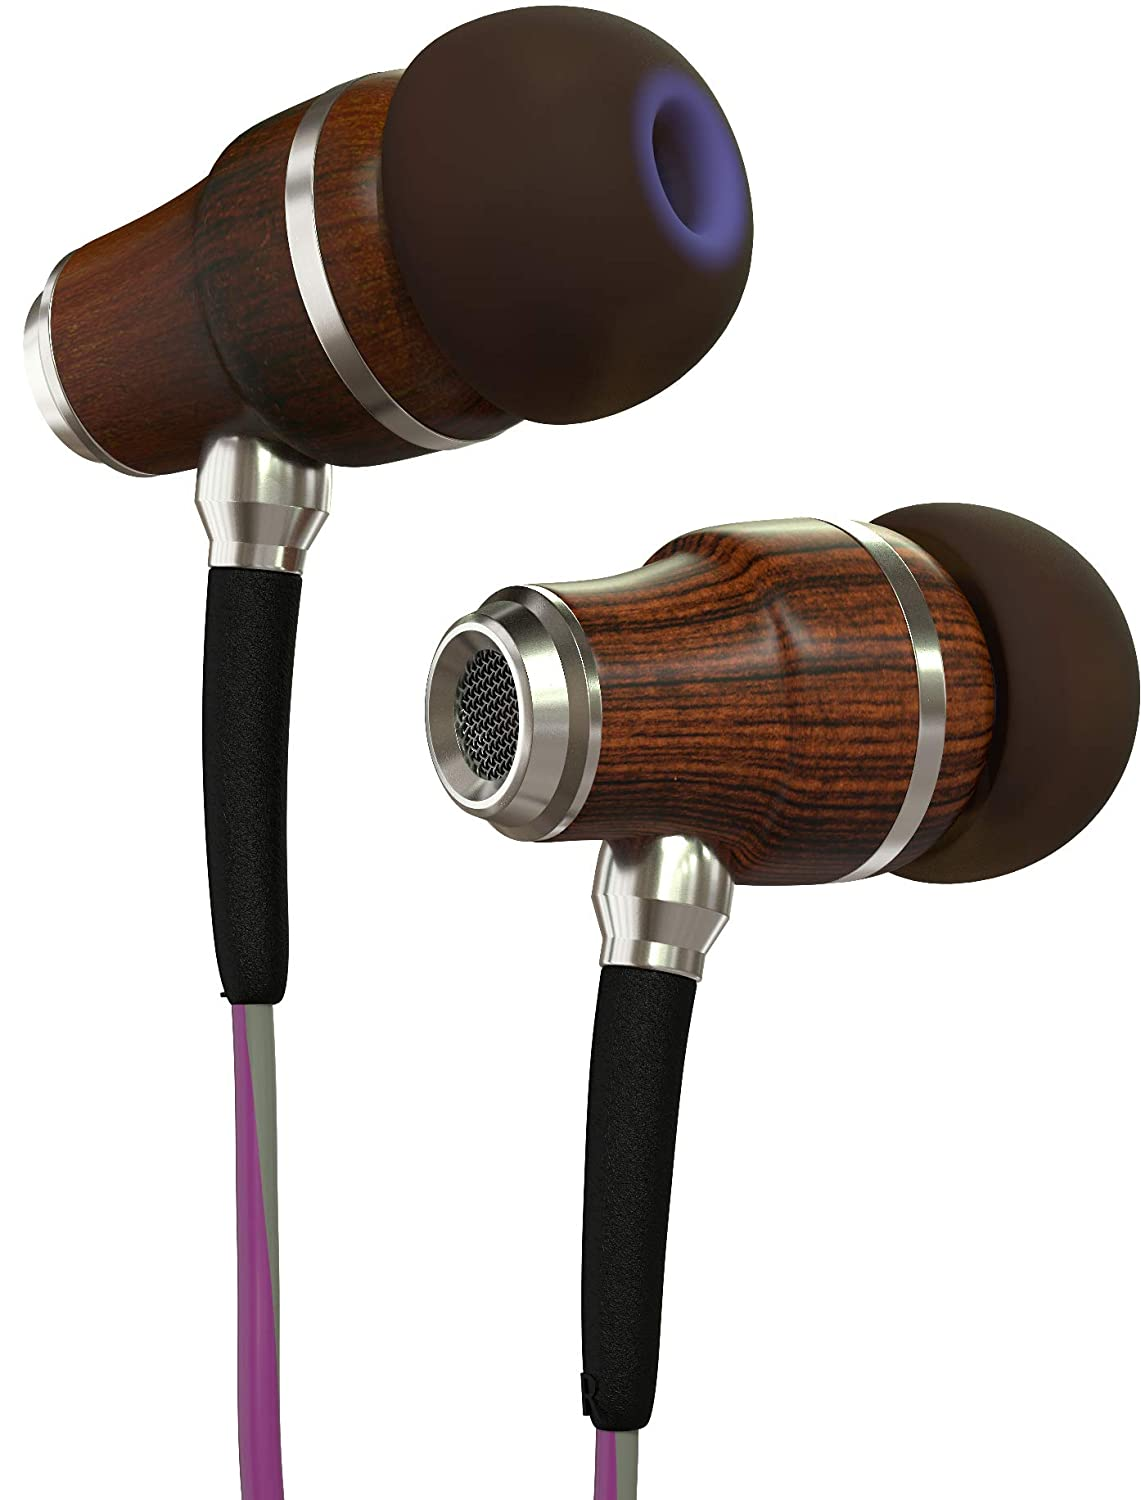 Symphonized NRG 3.0 Premium Wood In-ear Noise-isolating Headphones|Earbuds|Earphones with Mic & Volume Control (Fiery Orange & Hazy Gray) nrg3.0og